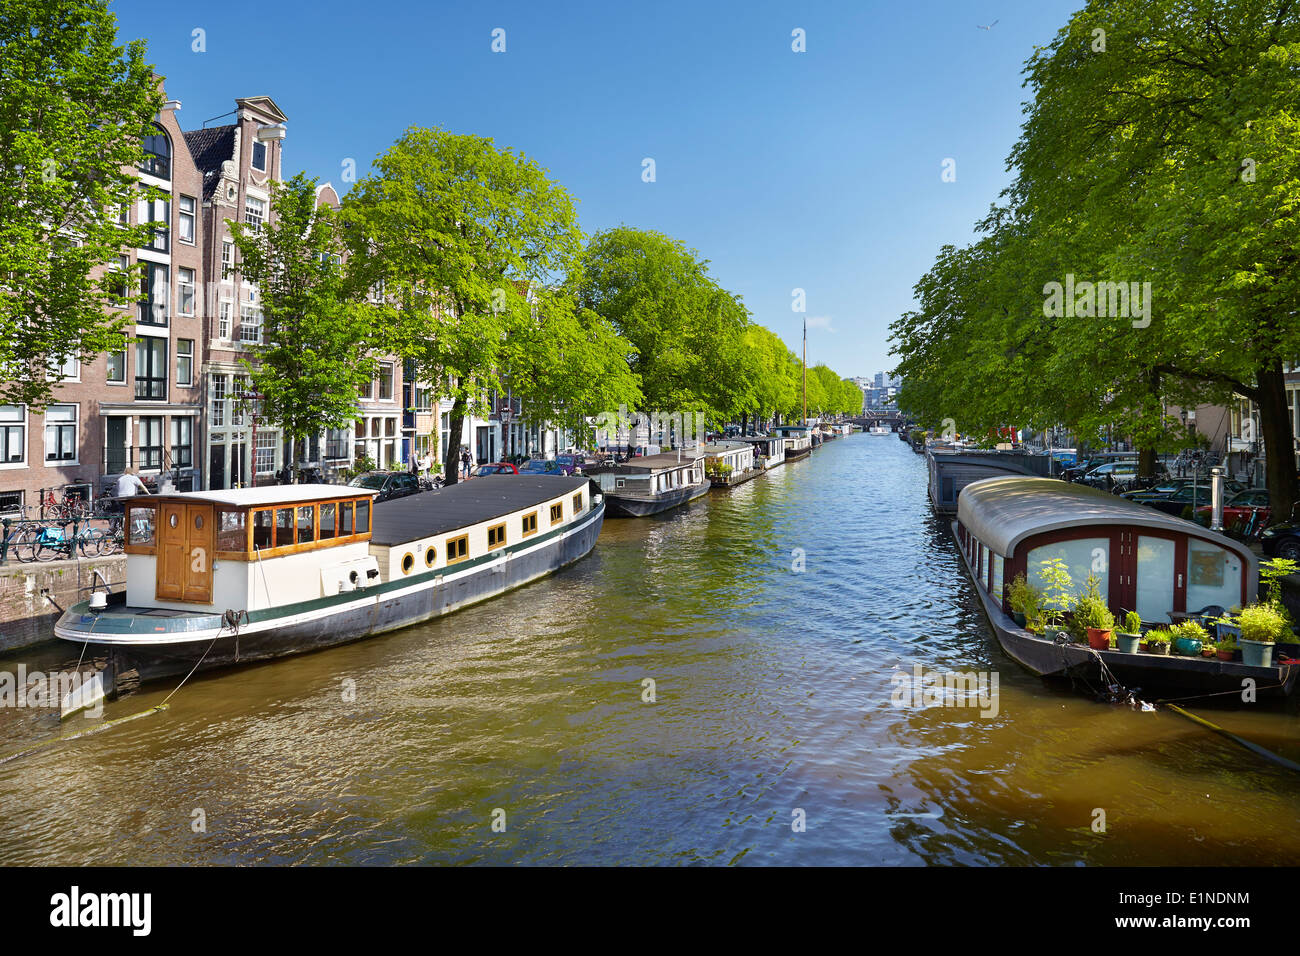 Péniche péniche, canal à Amsterdam - Hollande Pays-Bas Photo Stock